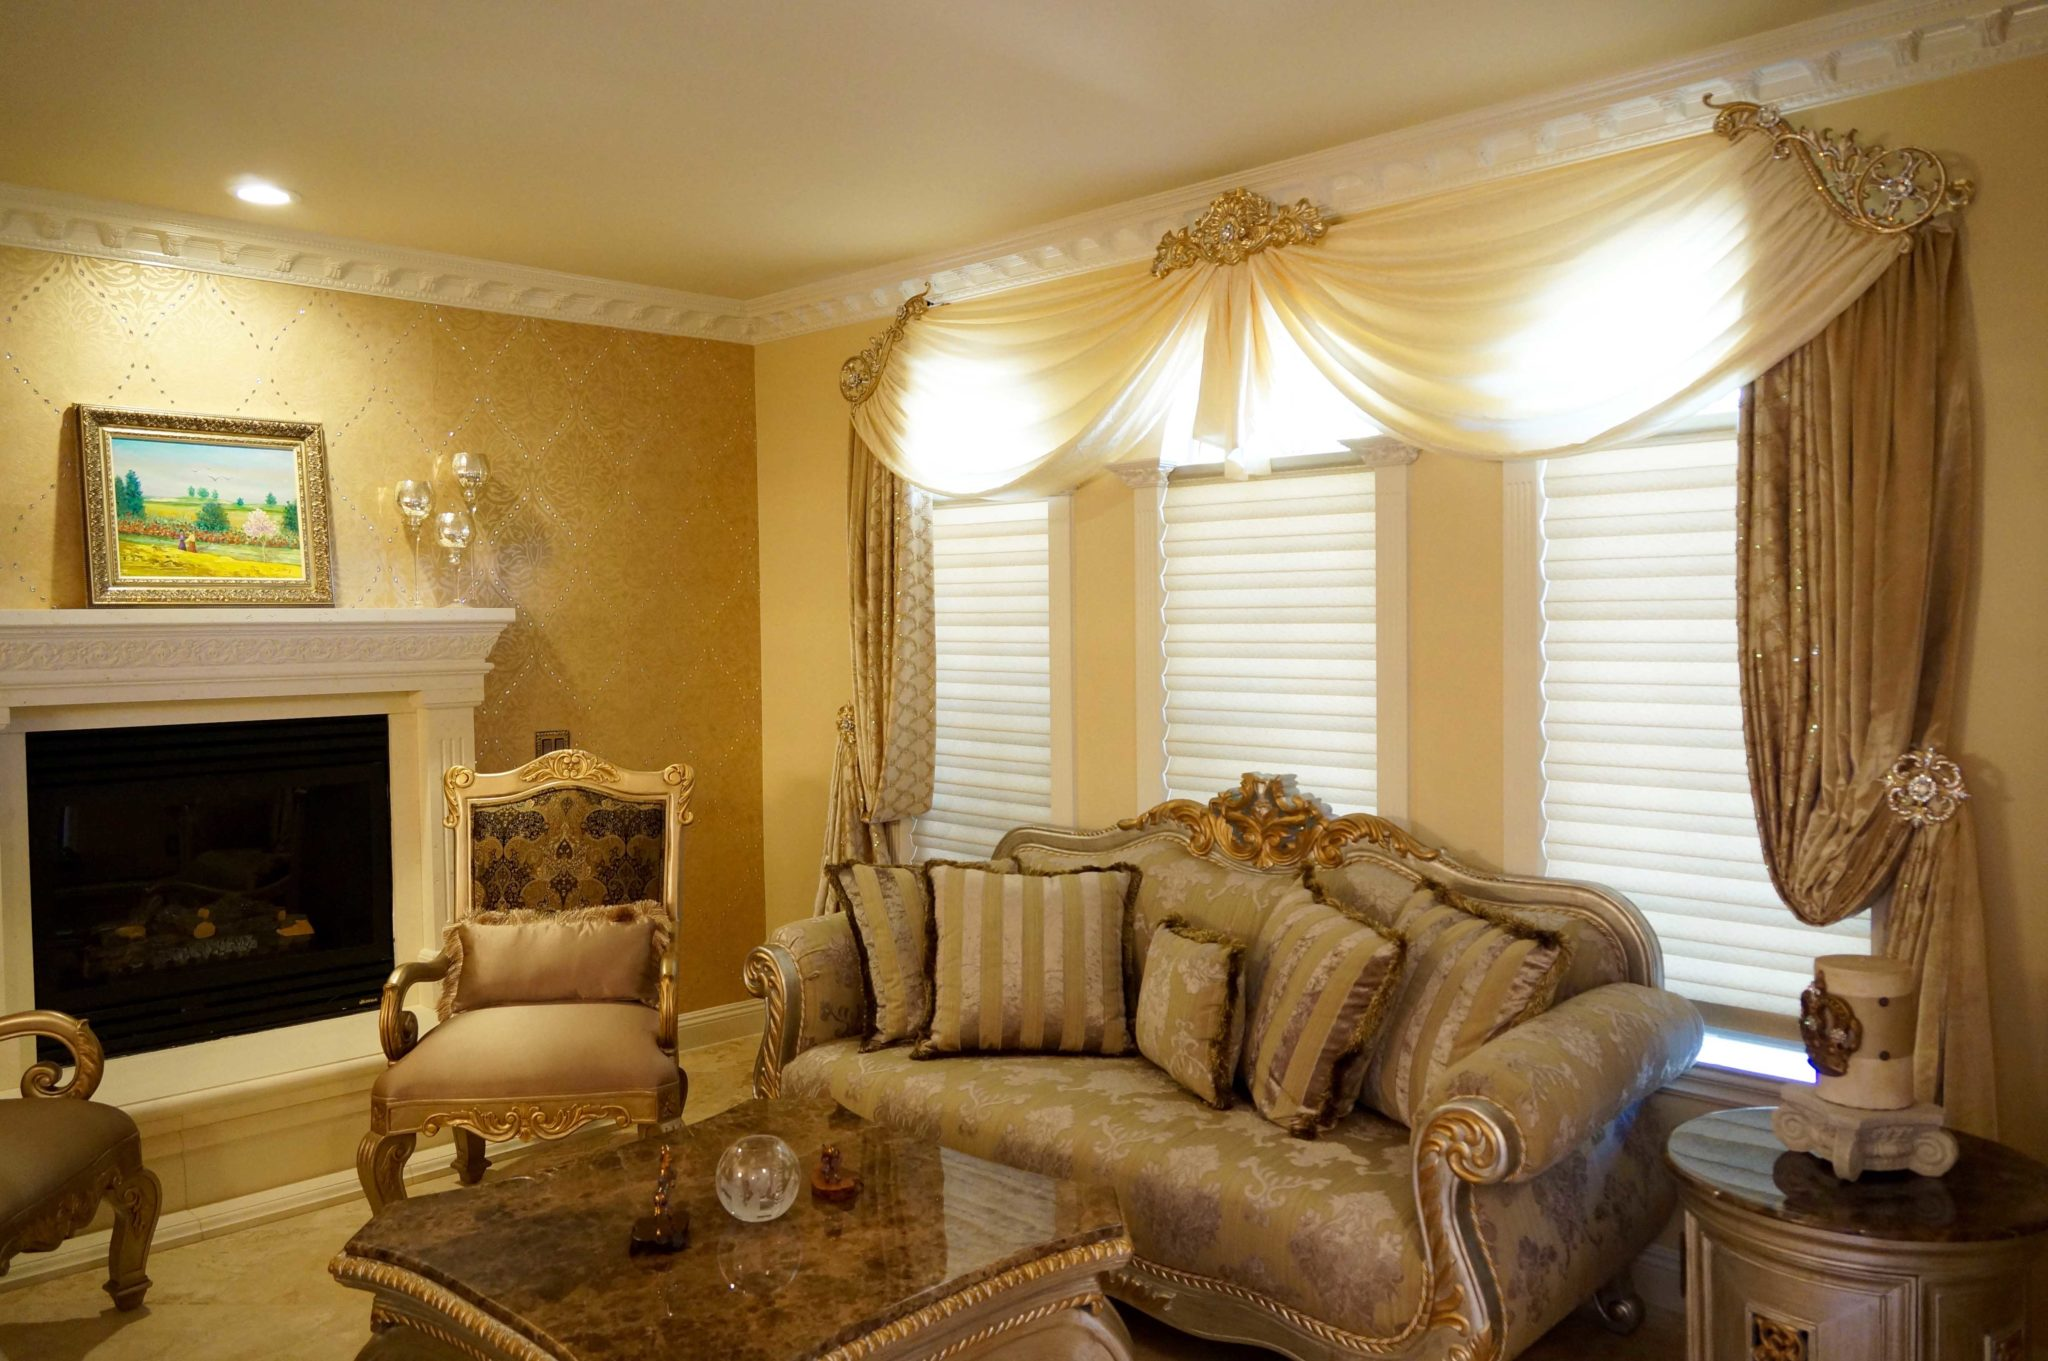 Royal drapery designs – Why curtains are Important.